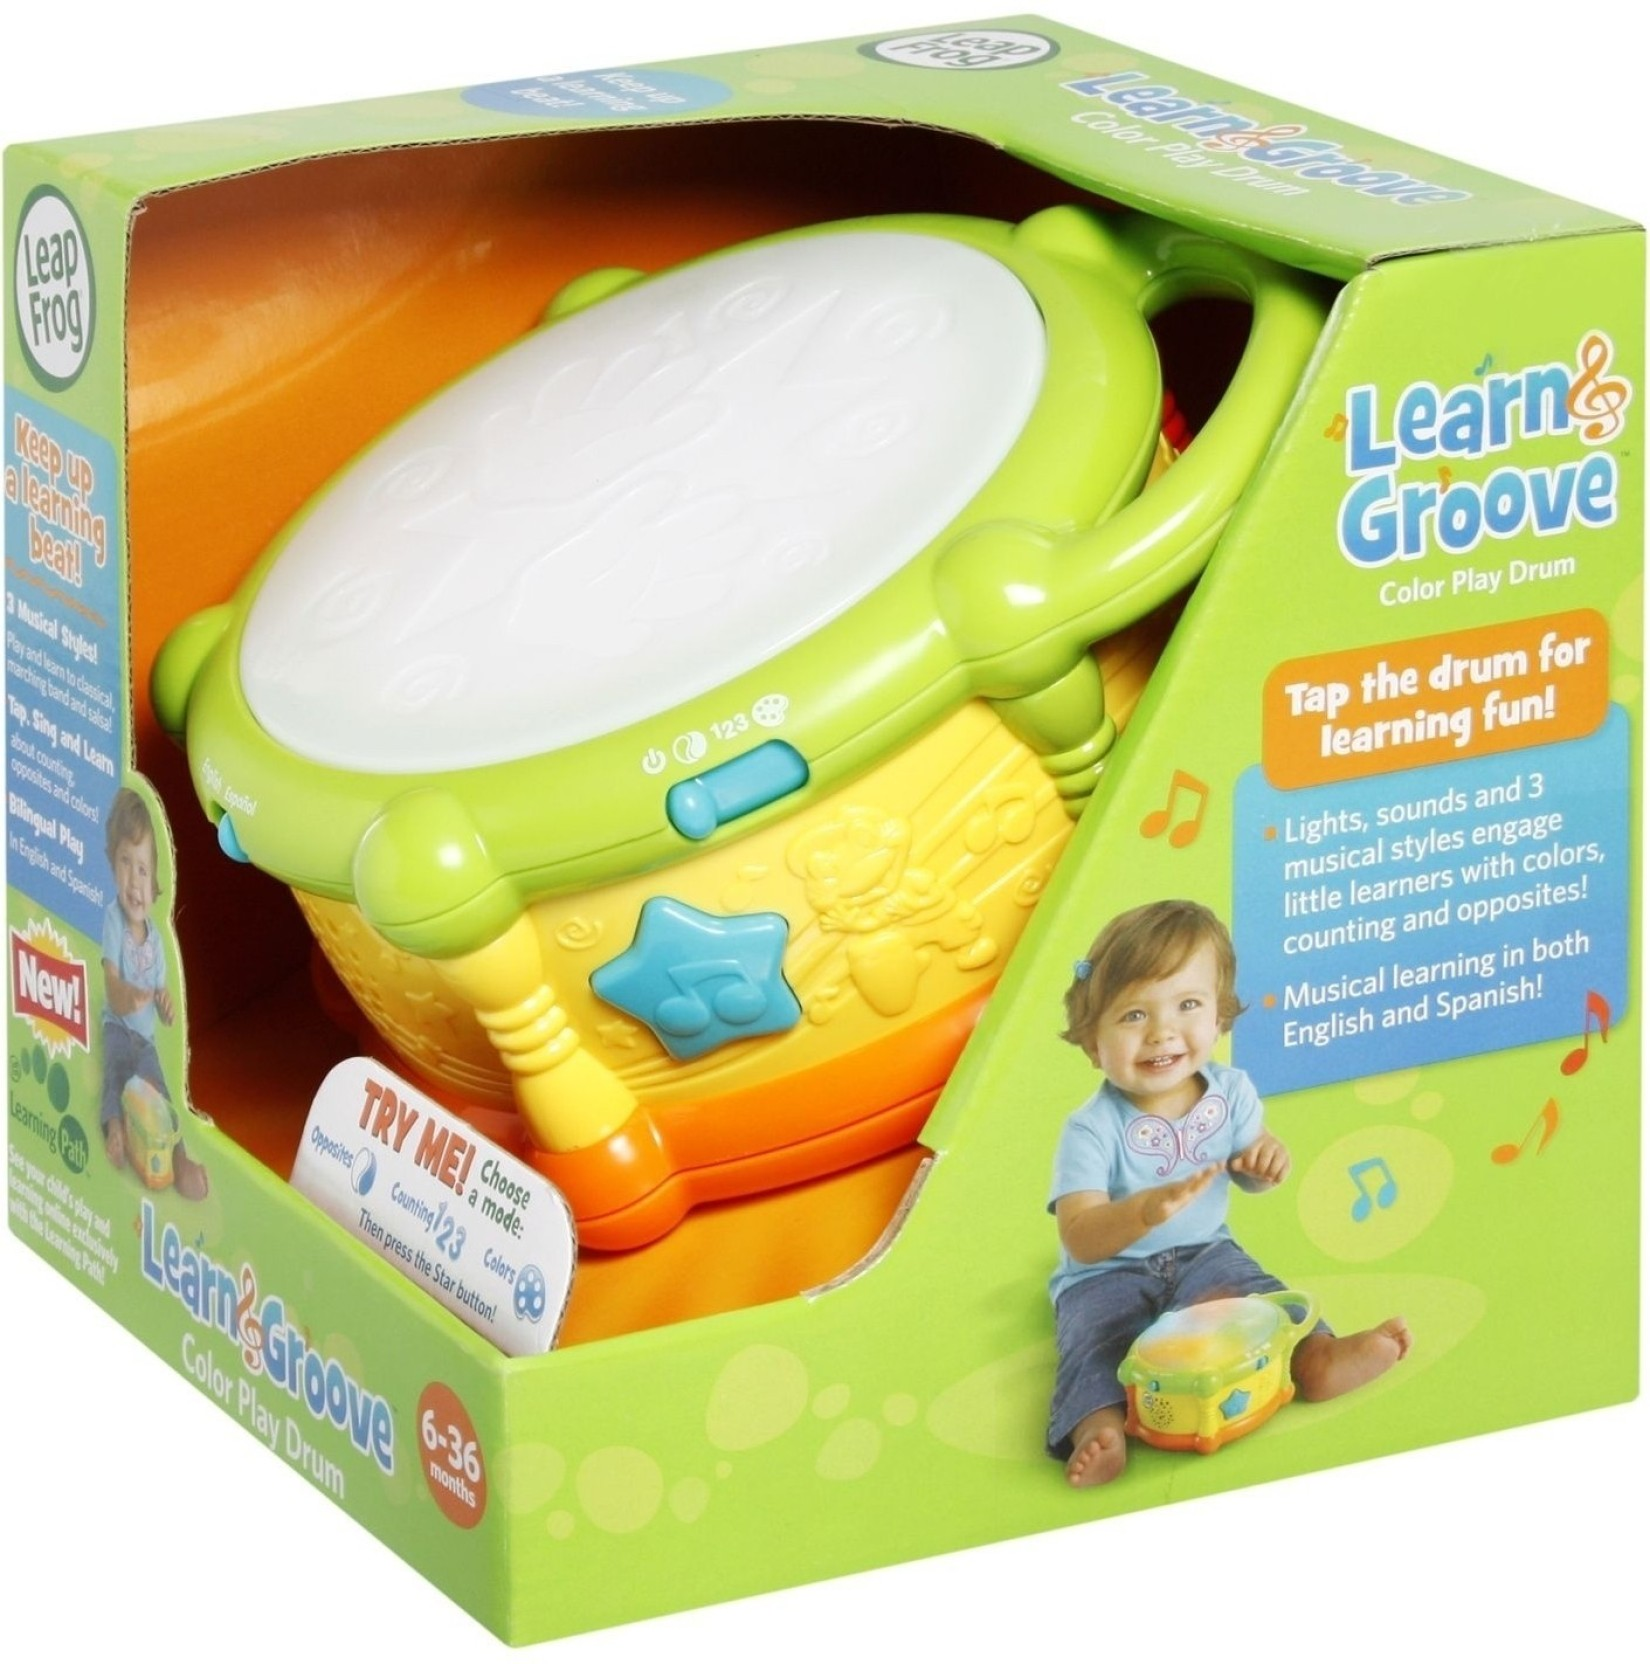 Leapfrog Learn And Groove Musical Table Review